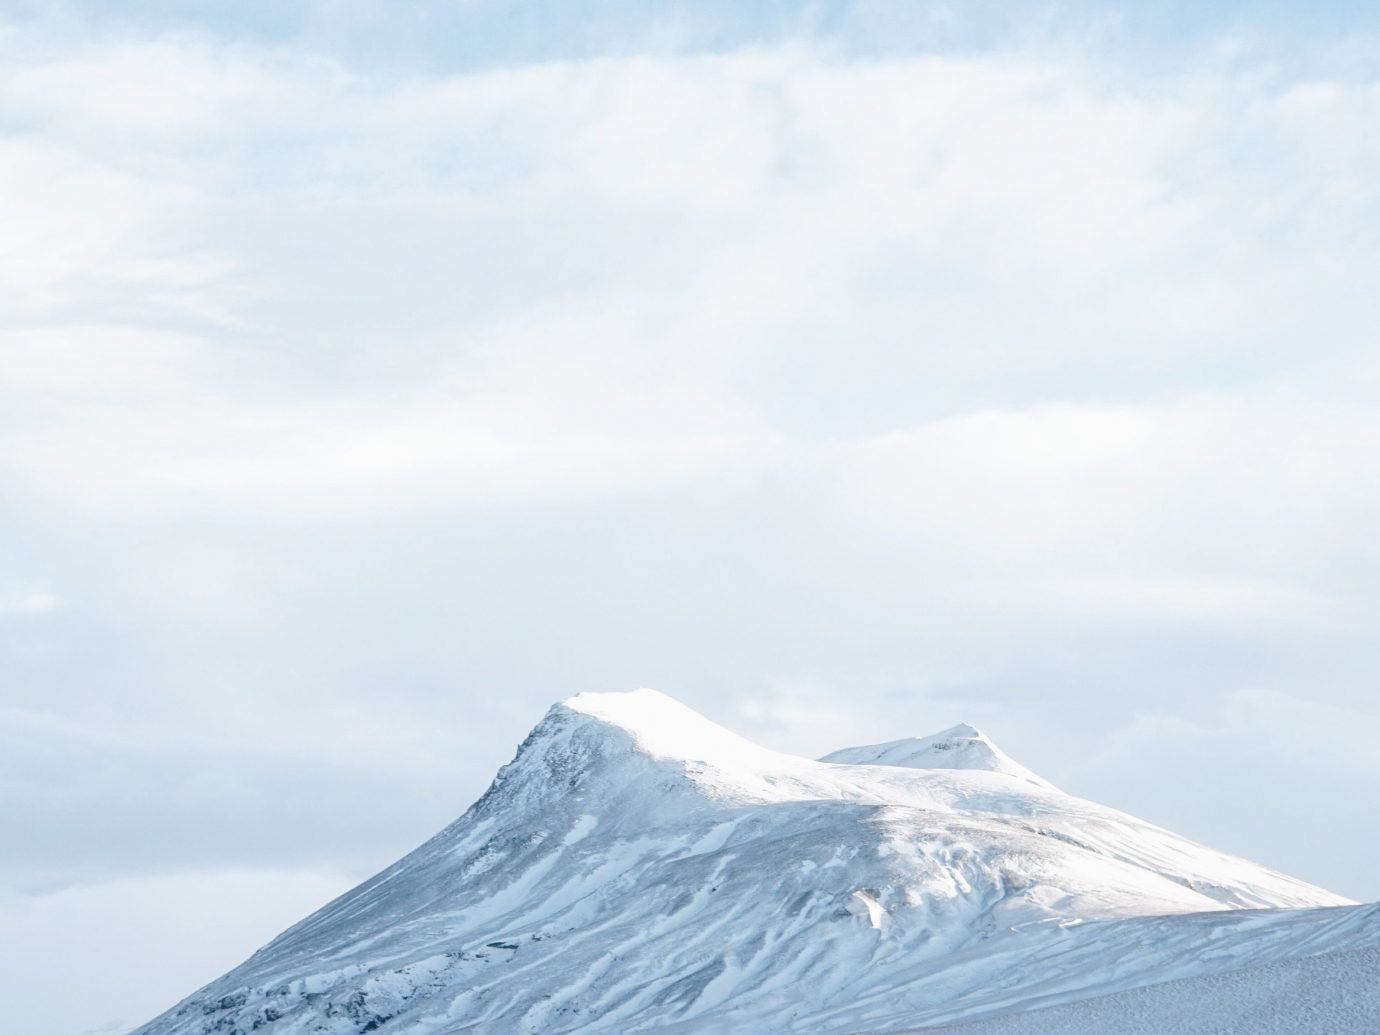 Trip Ideas sky outdoor mountain snow habitat Nature geographical feature landform natural environment arctic Winter tundra arctic ocean Sea ice plateau day highland